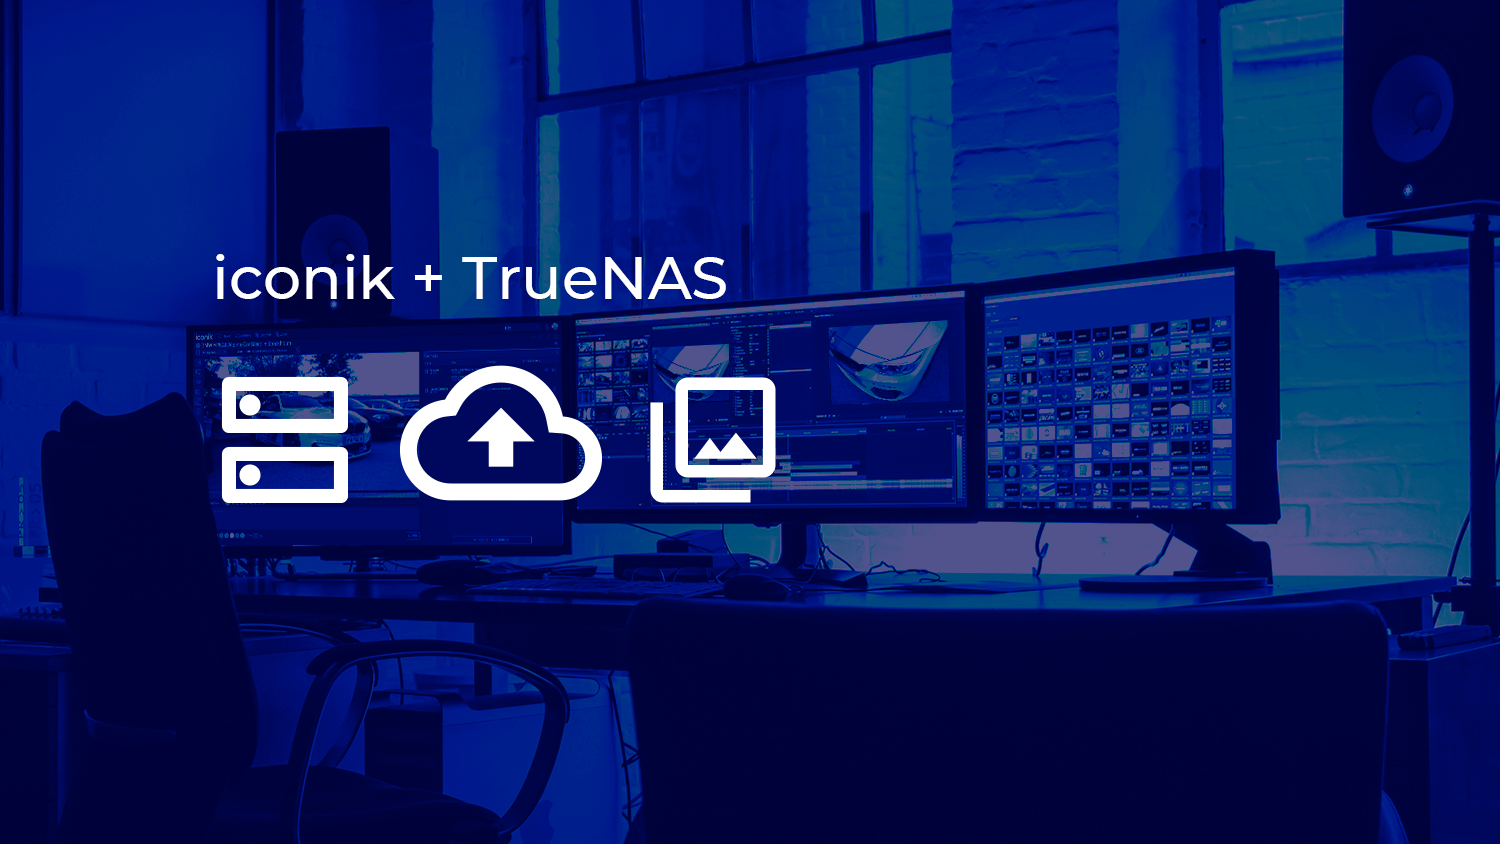 image from iconik + TrueNAS, A Turnkey Hybrid Cloud with Media Management